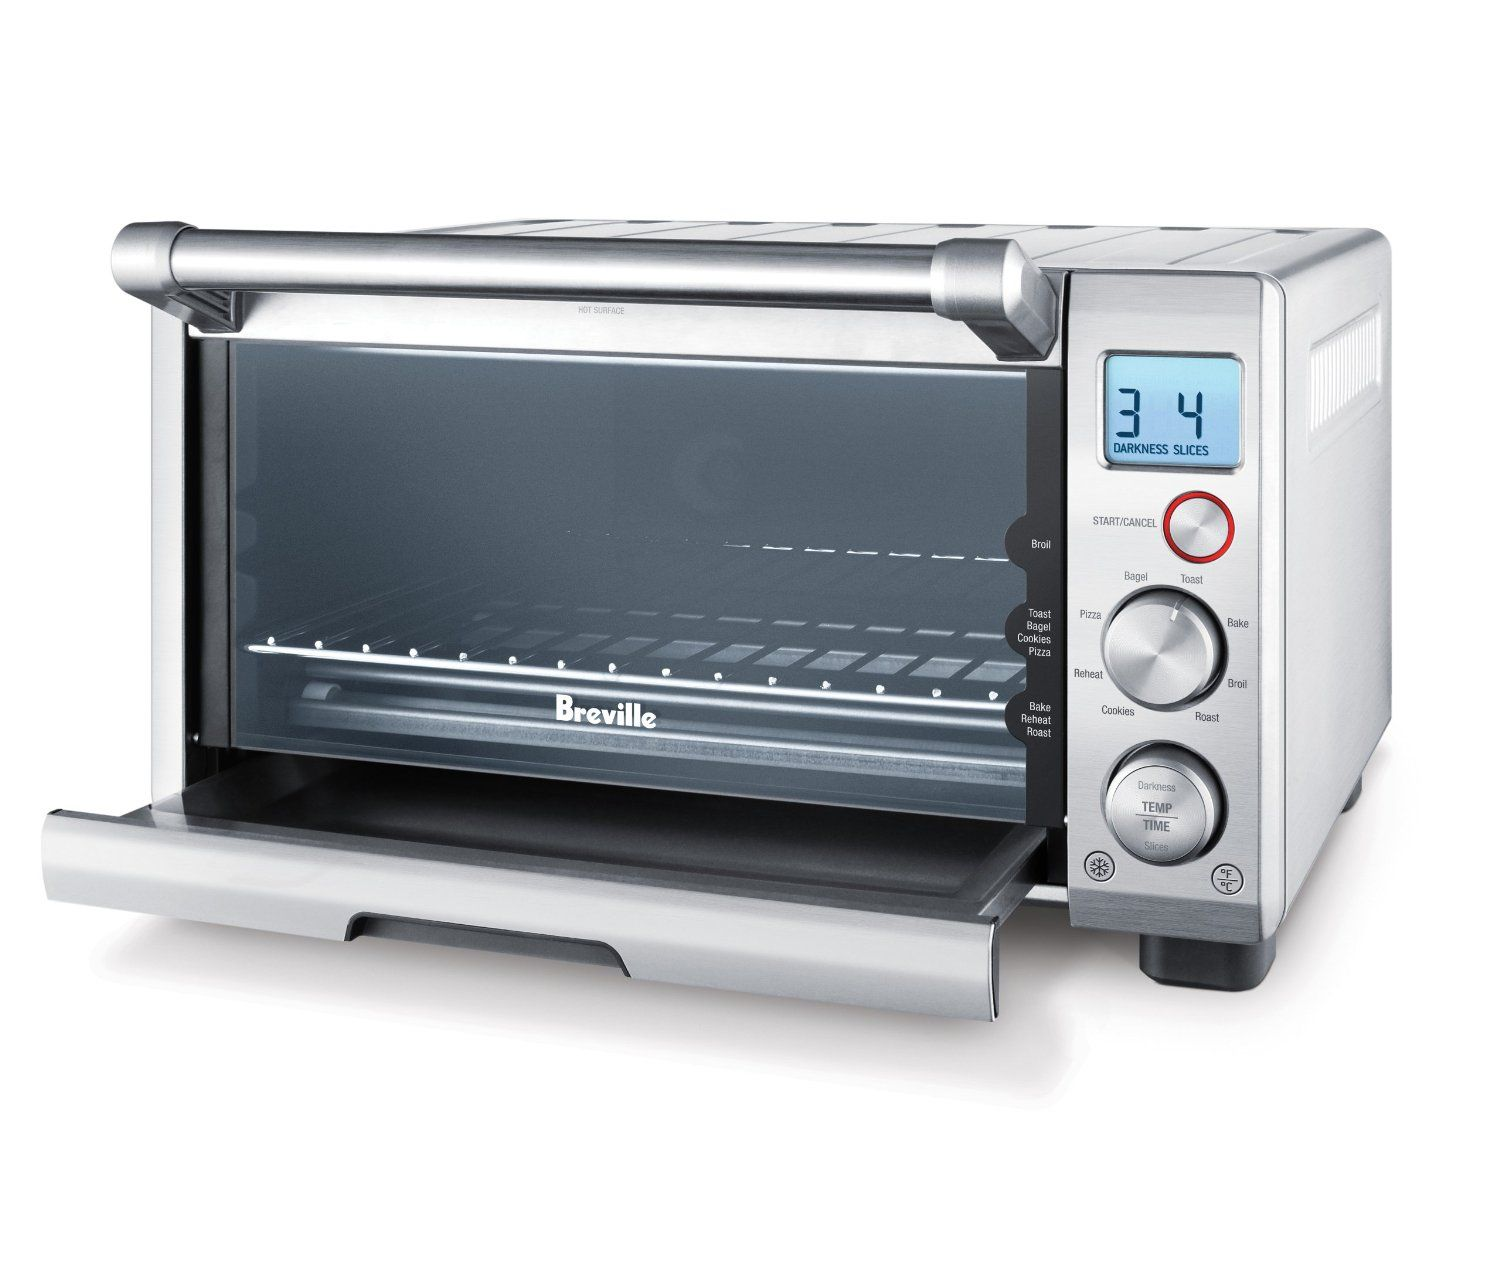 Breville Toaster Oven Google Search Smart Oven